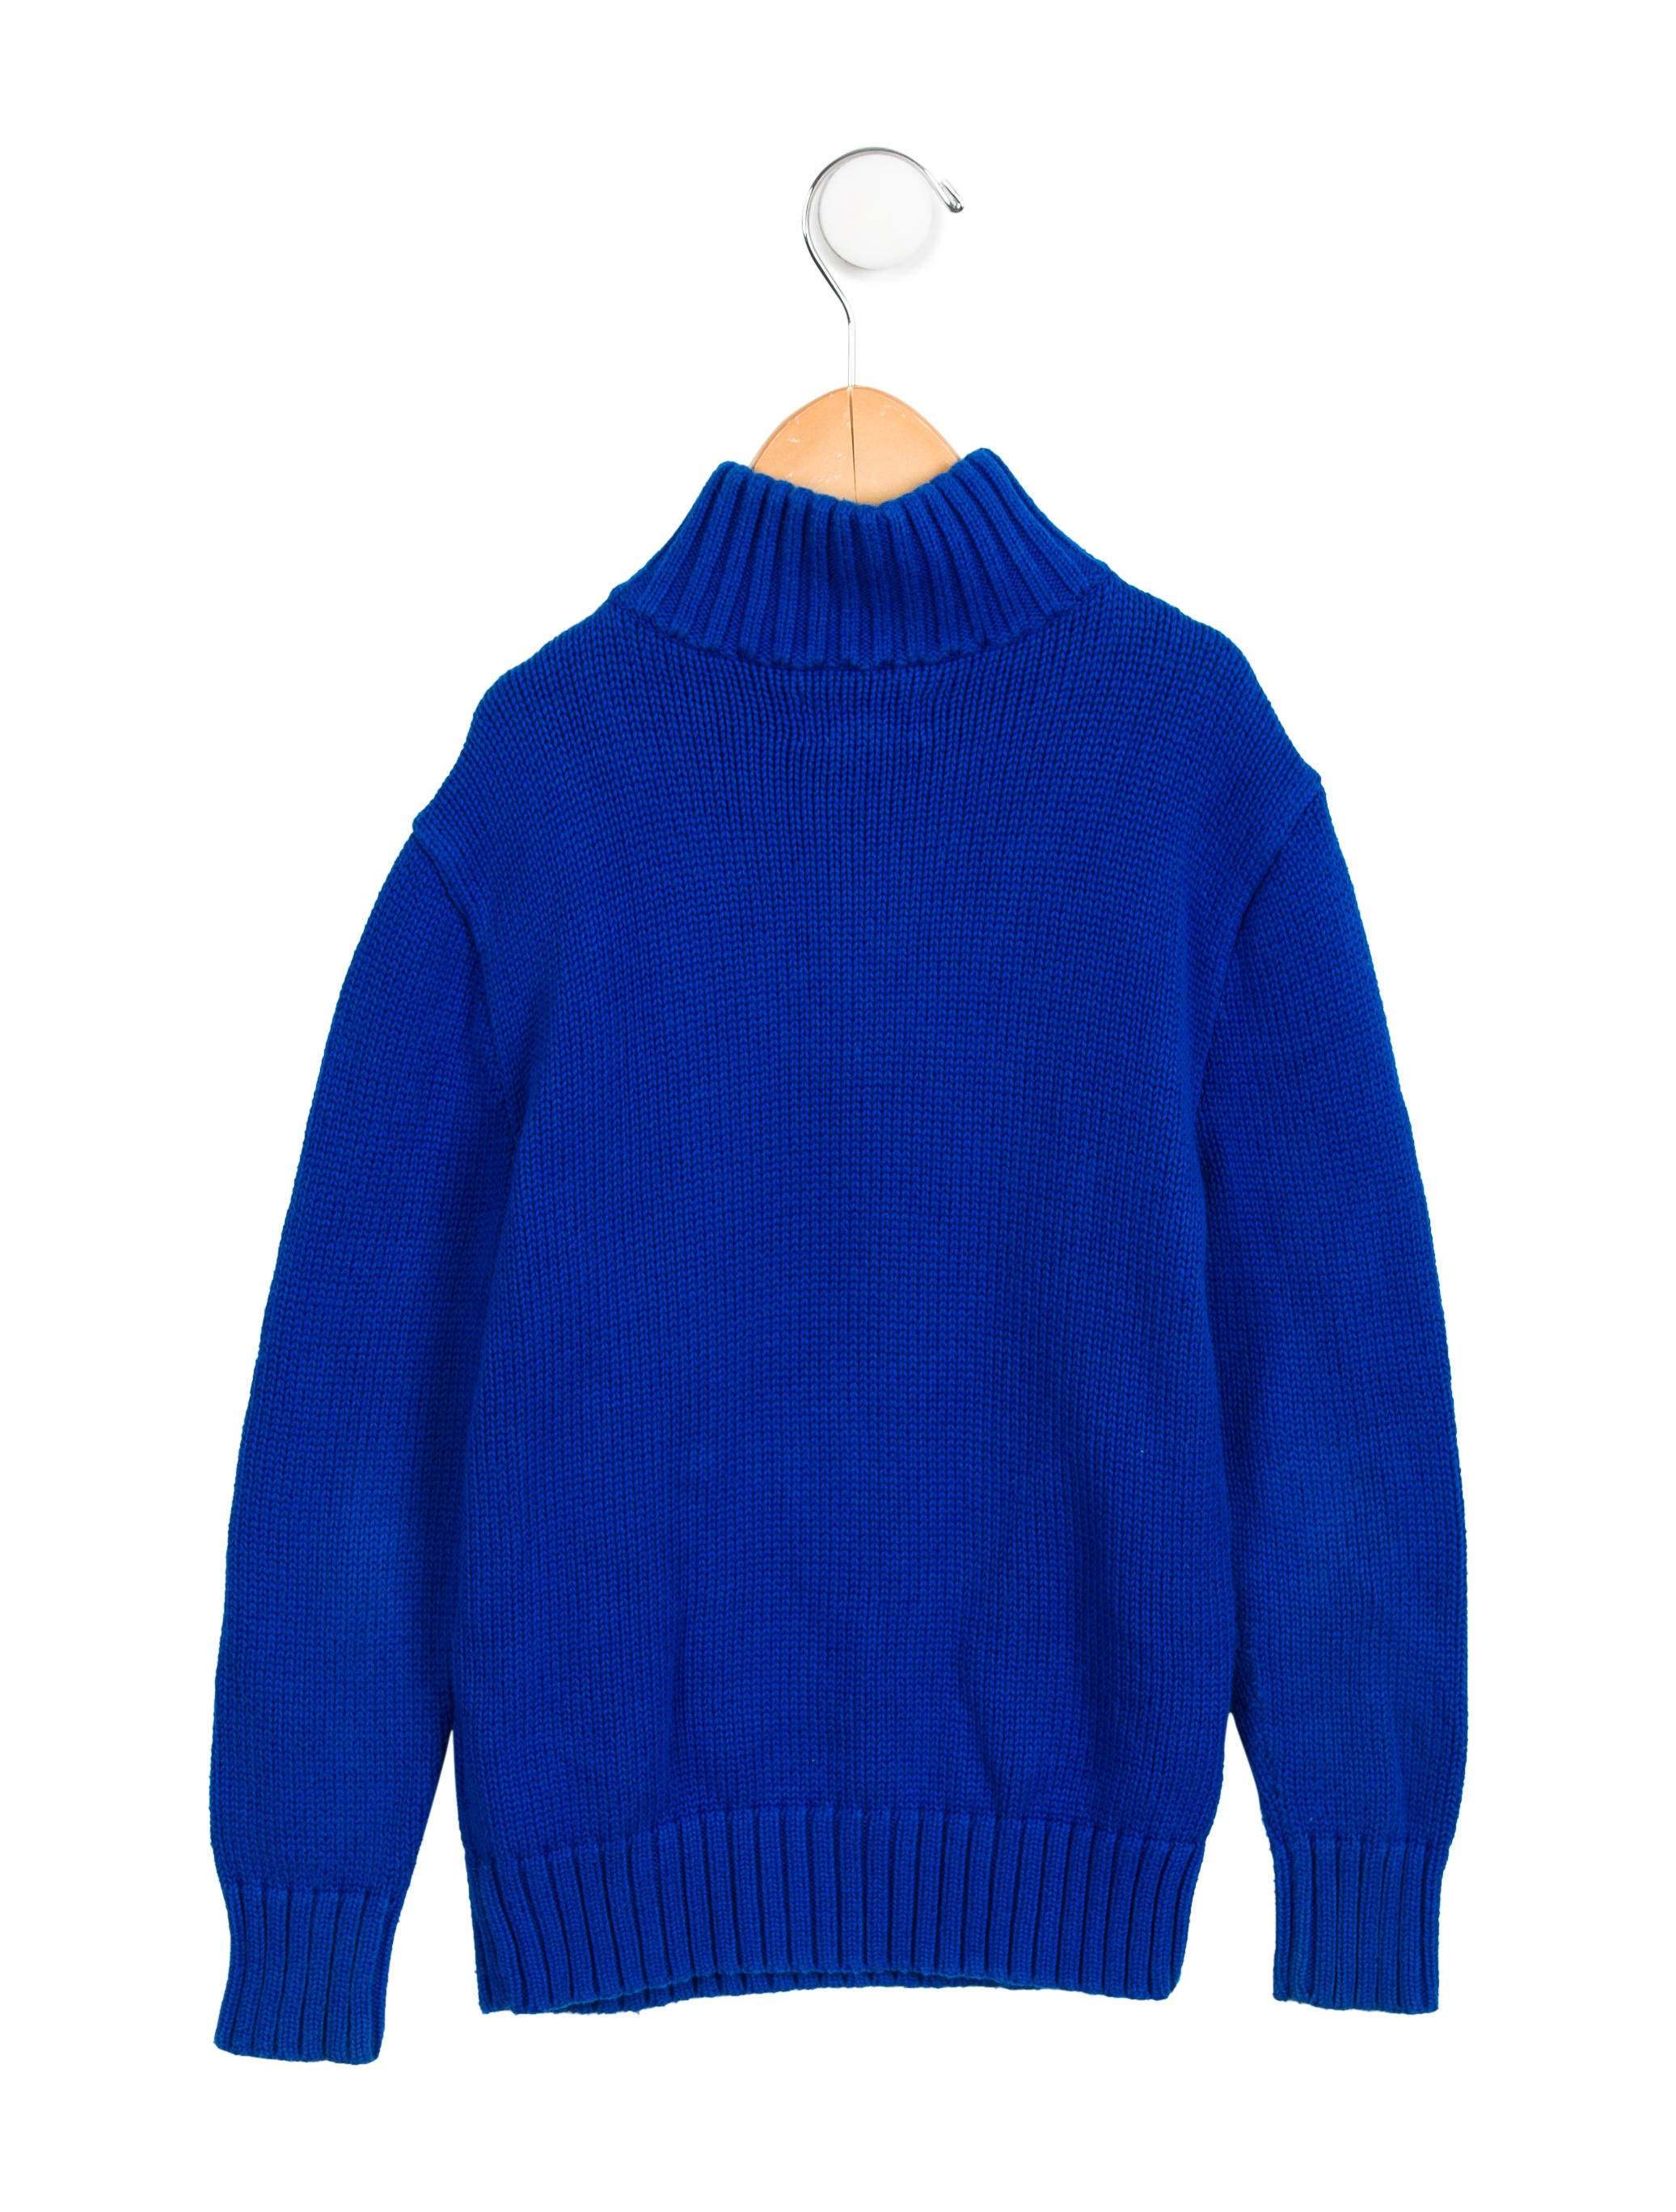 New Polo Ralph Lauren Boys Knit Logo Sweater Boys Boys Knit Sweater Of Lovely 50 Models Boys Knit Sweater